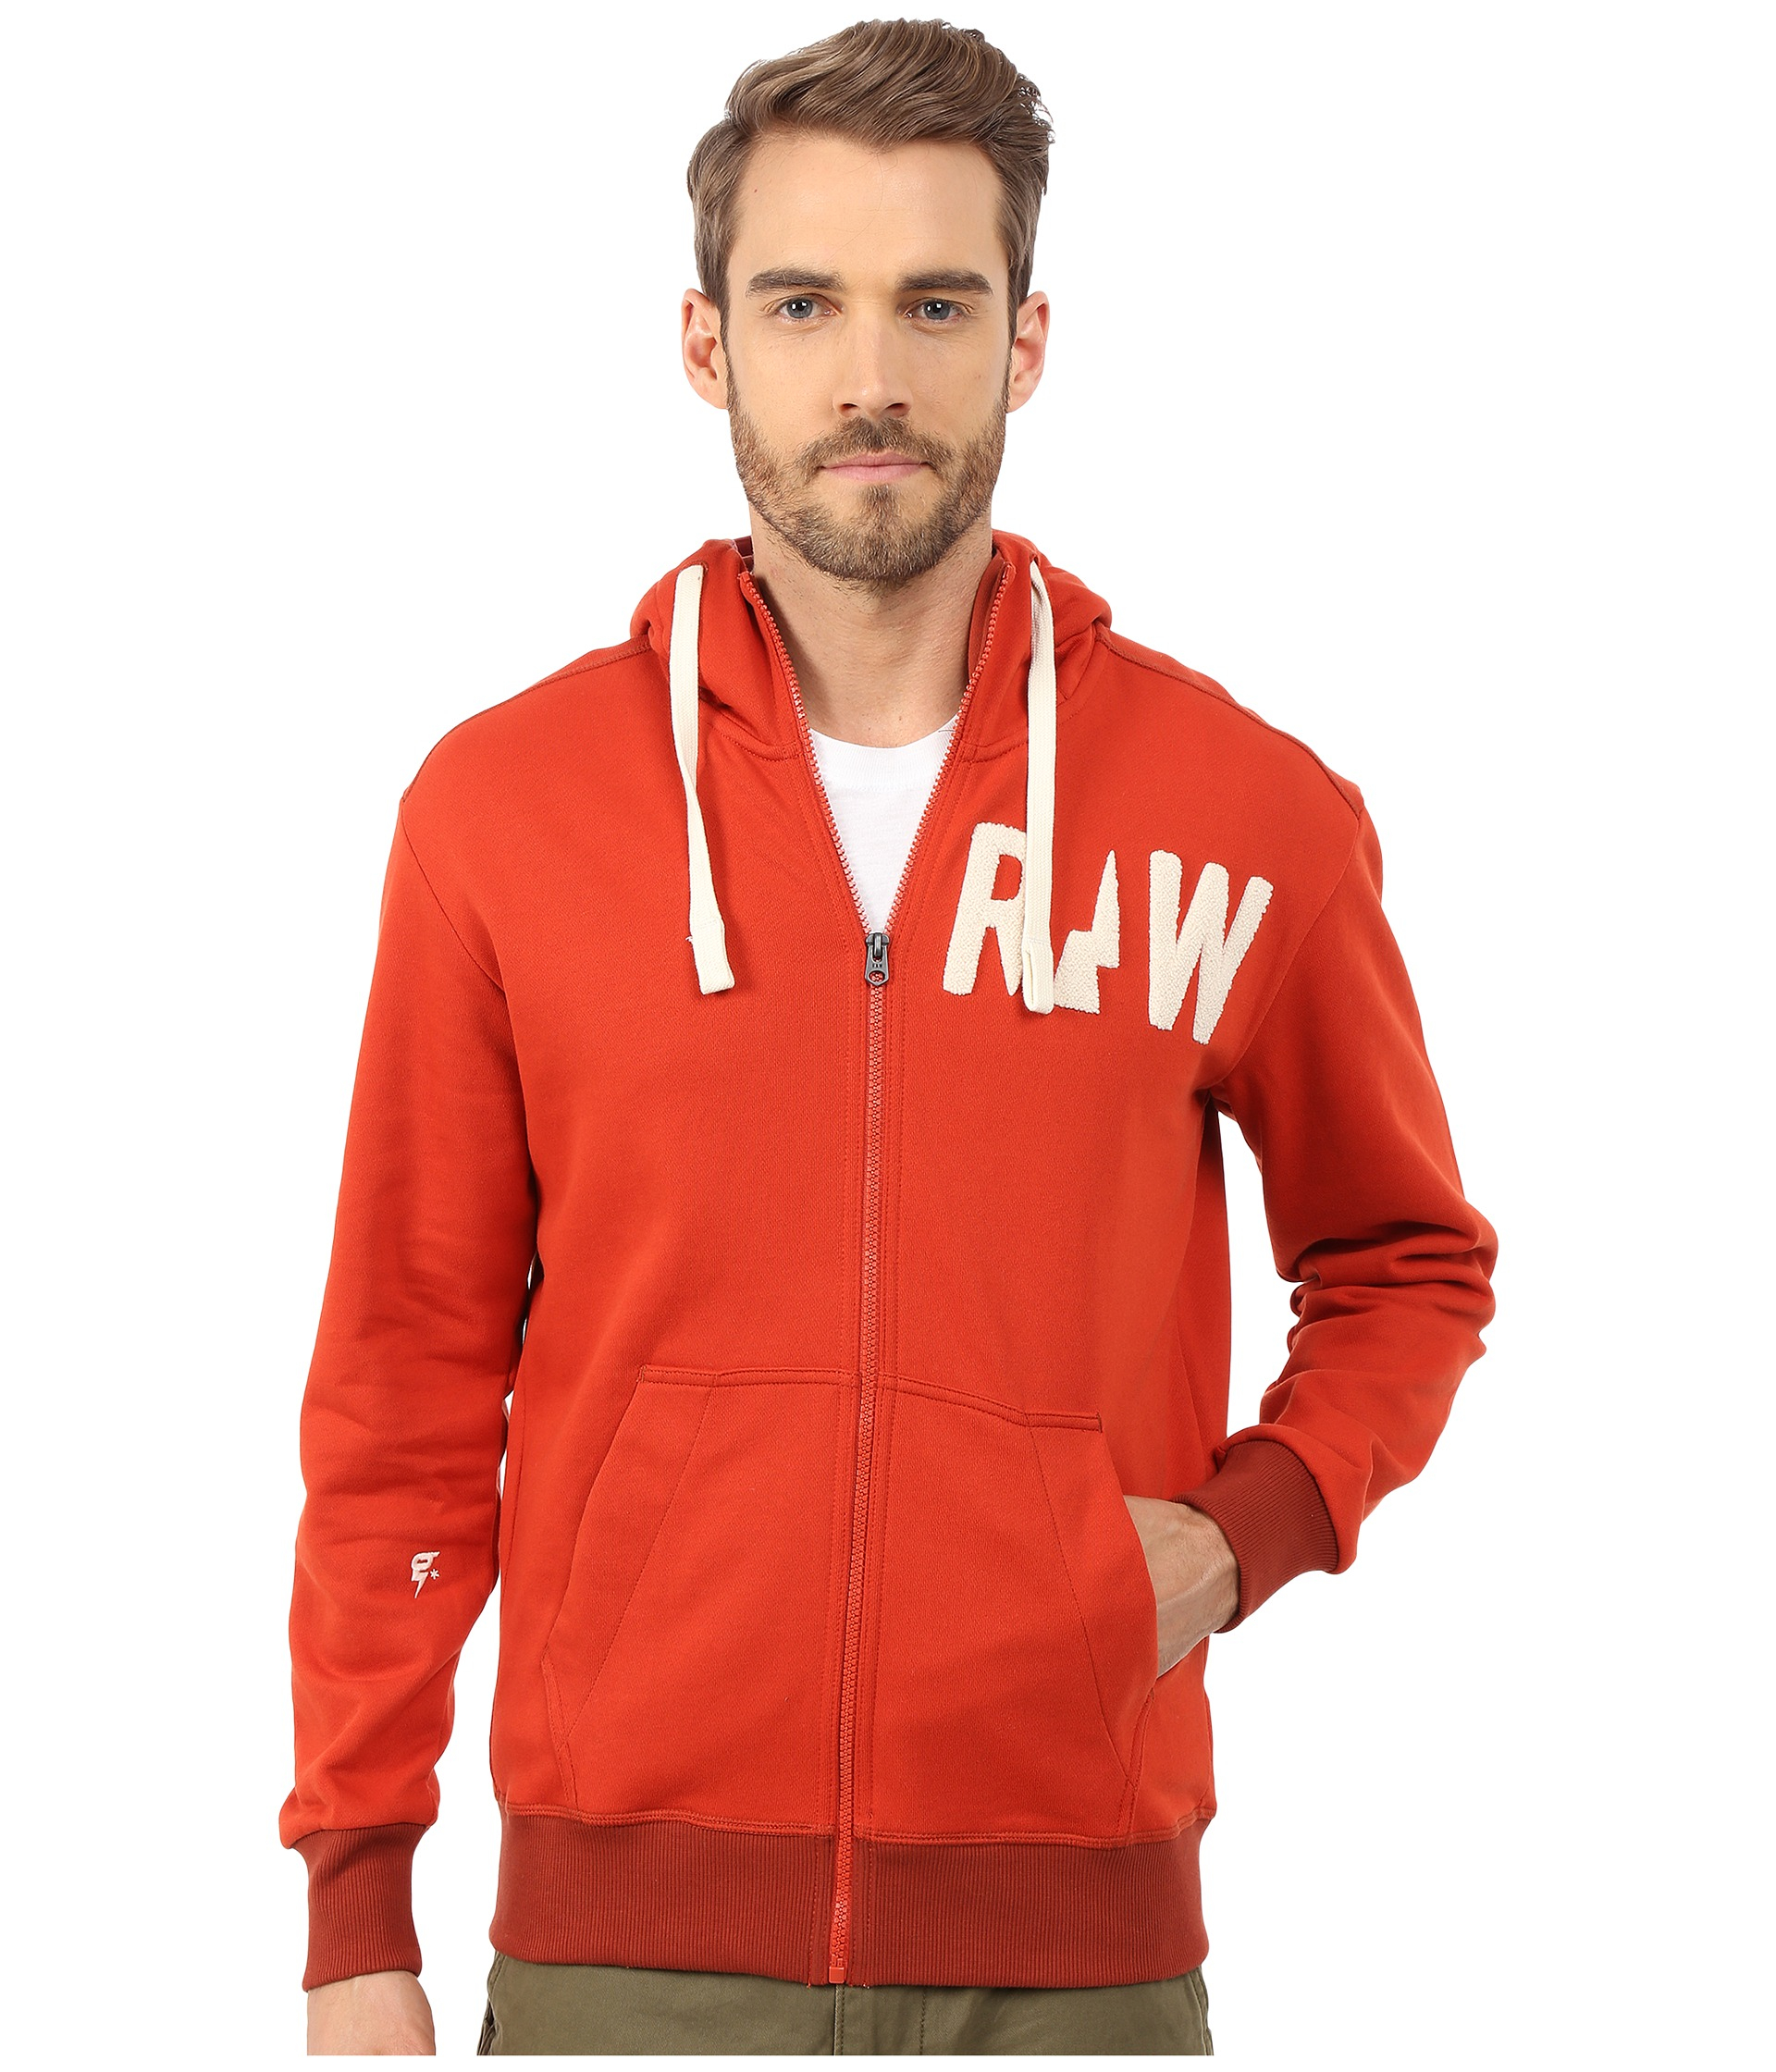 lyst g star raw grount hooded sweater vest in red for men. Black Bedroom Furniture Sets. Home Design Ideas